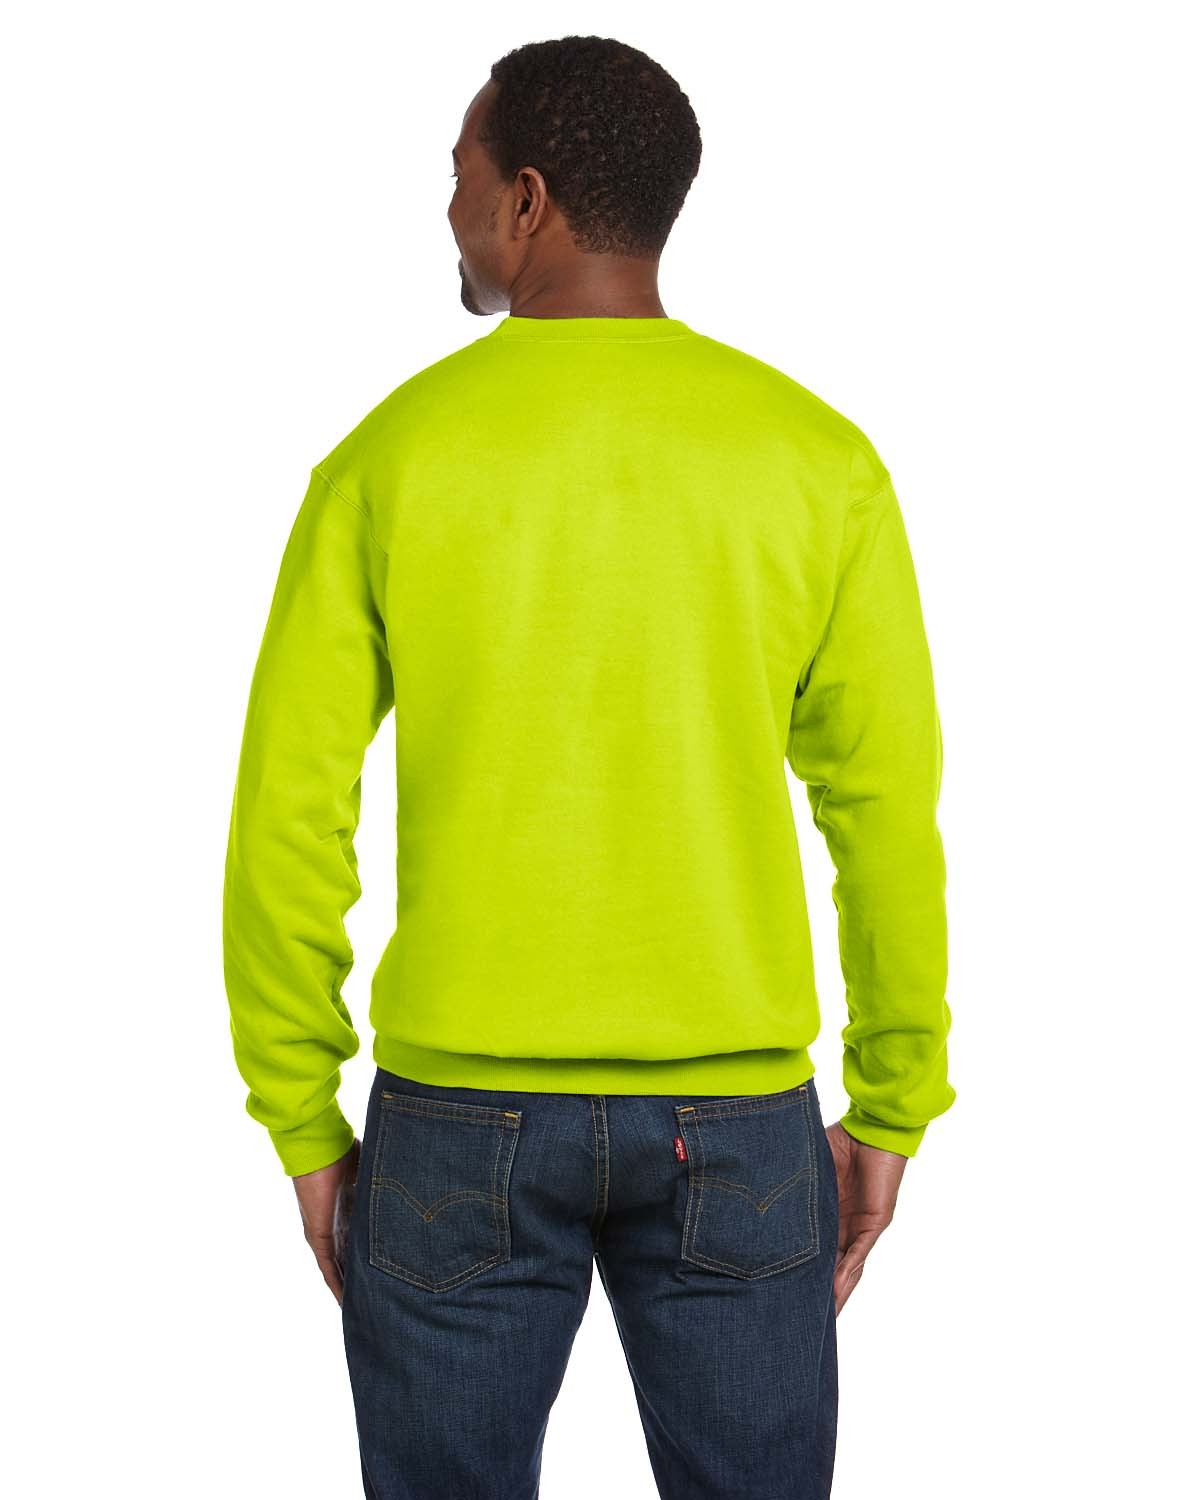 P1607 Hanes SAFETY GREEN